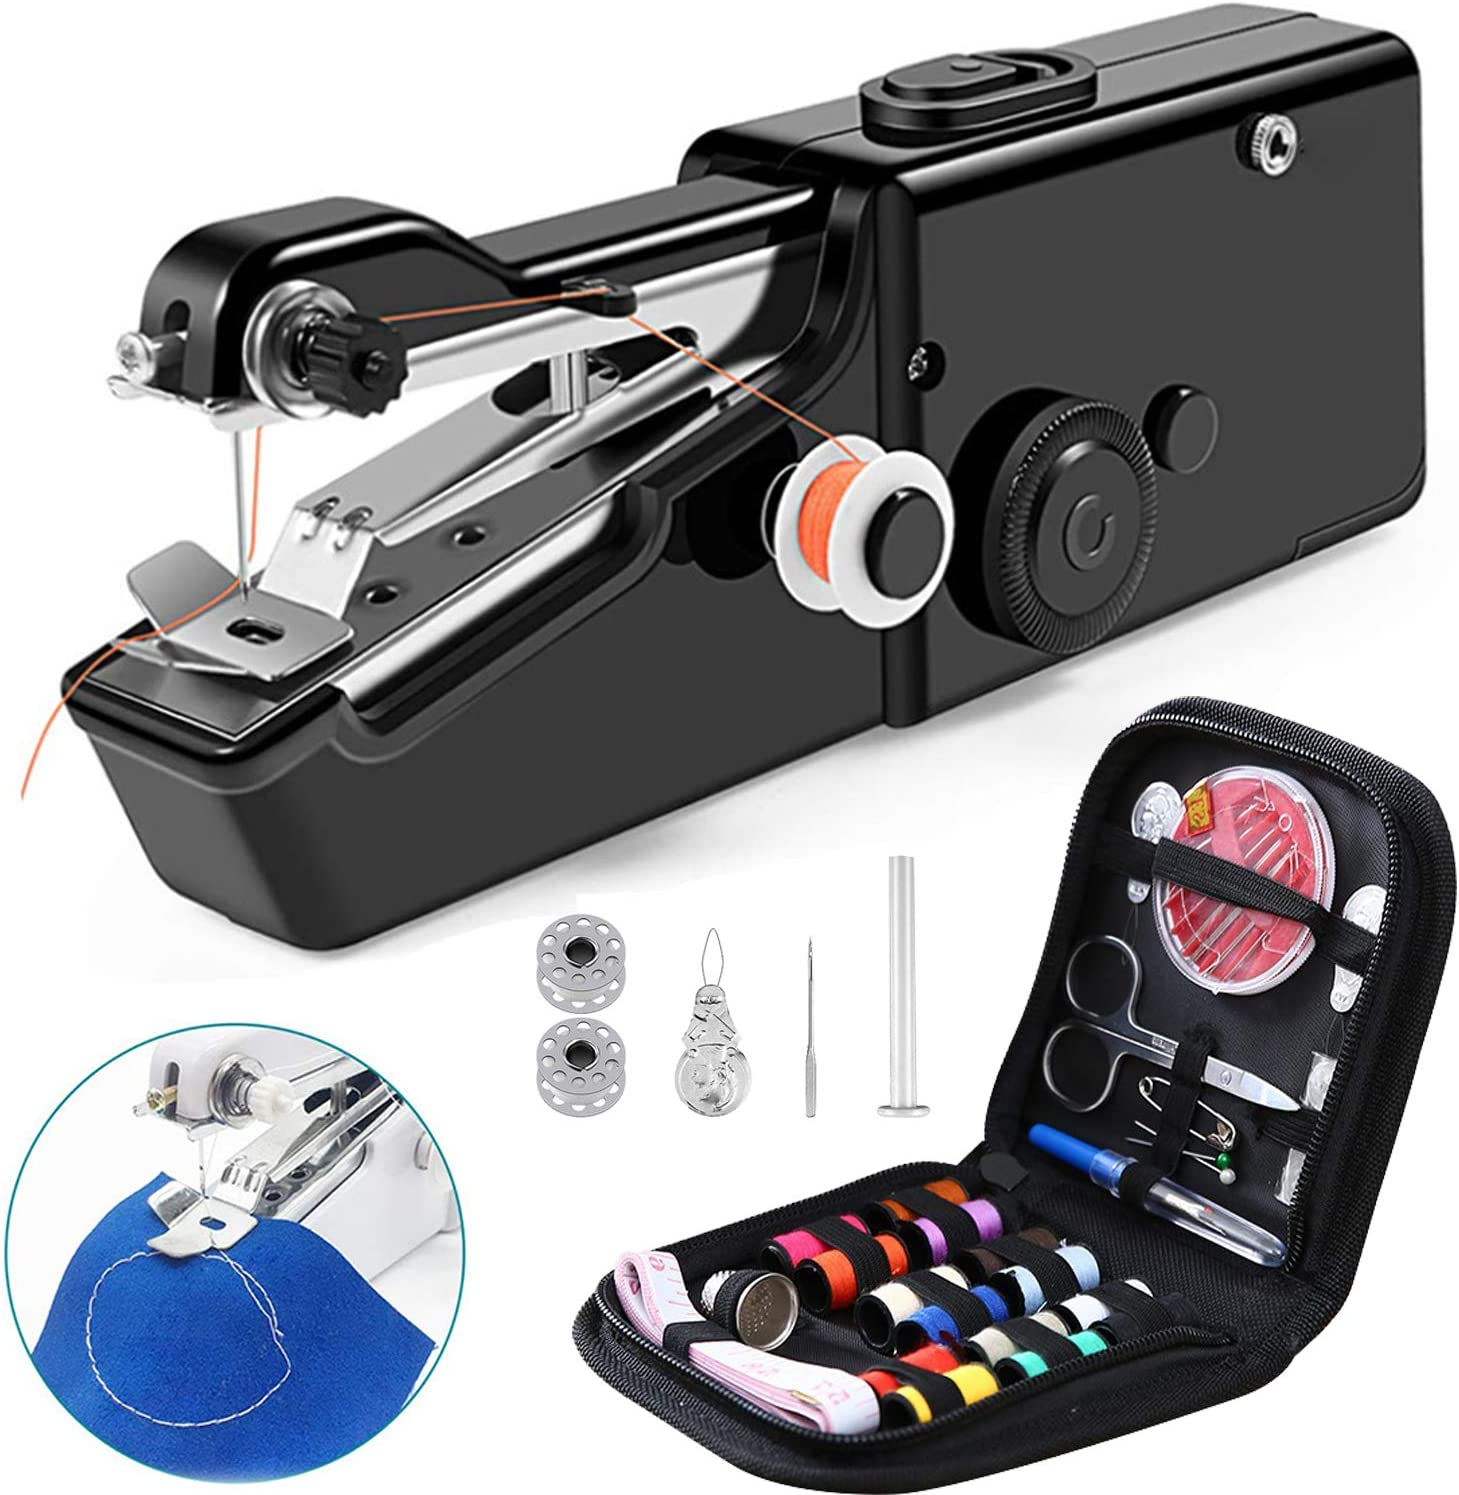 Electric Sewing Machine with Free Sewing Kit Mini Sewing Machine YCDTMY Mini Portable Portable Electric Sewing Machine Kit Black